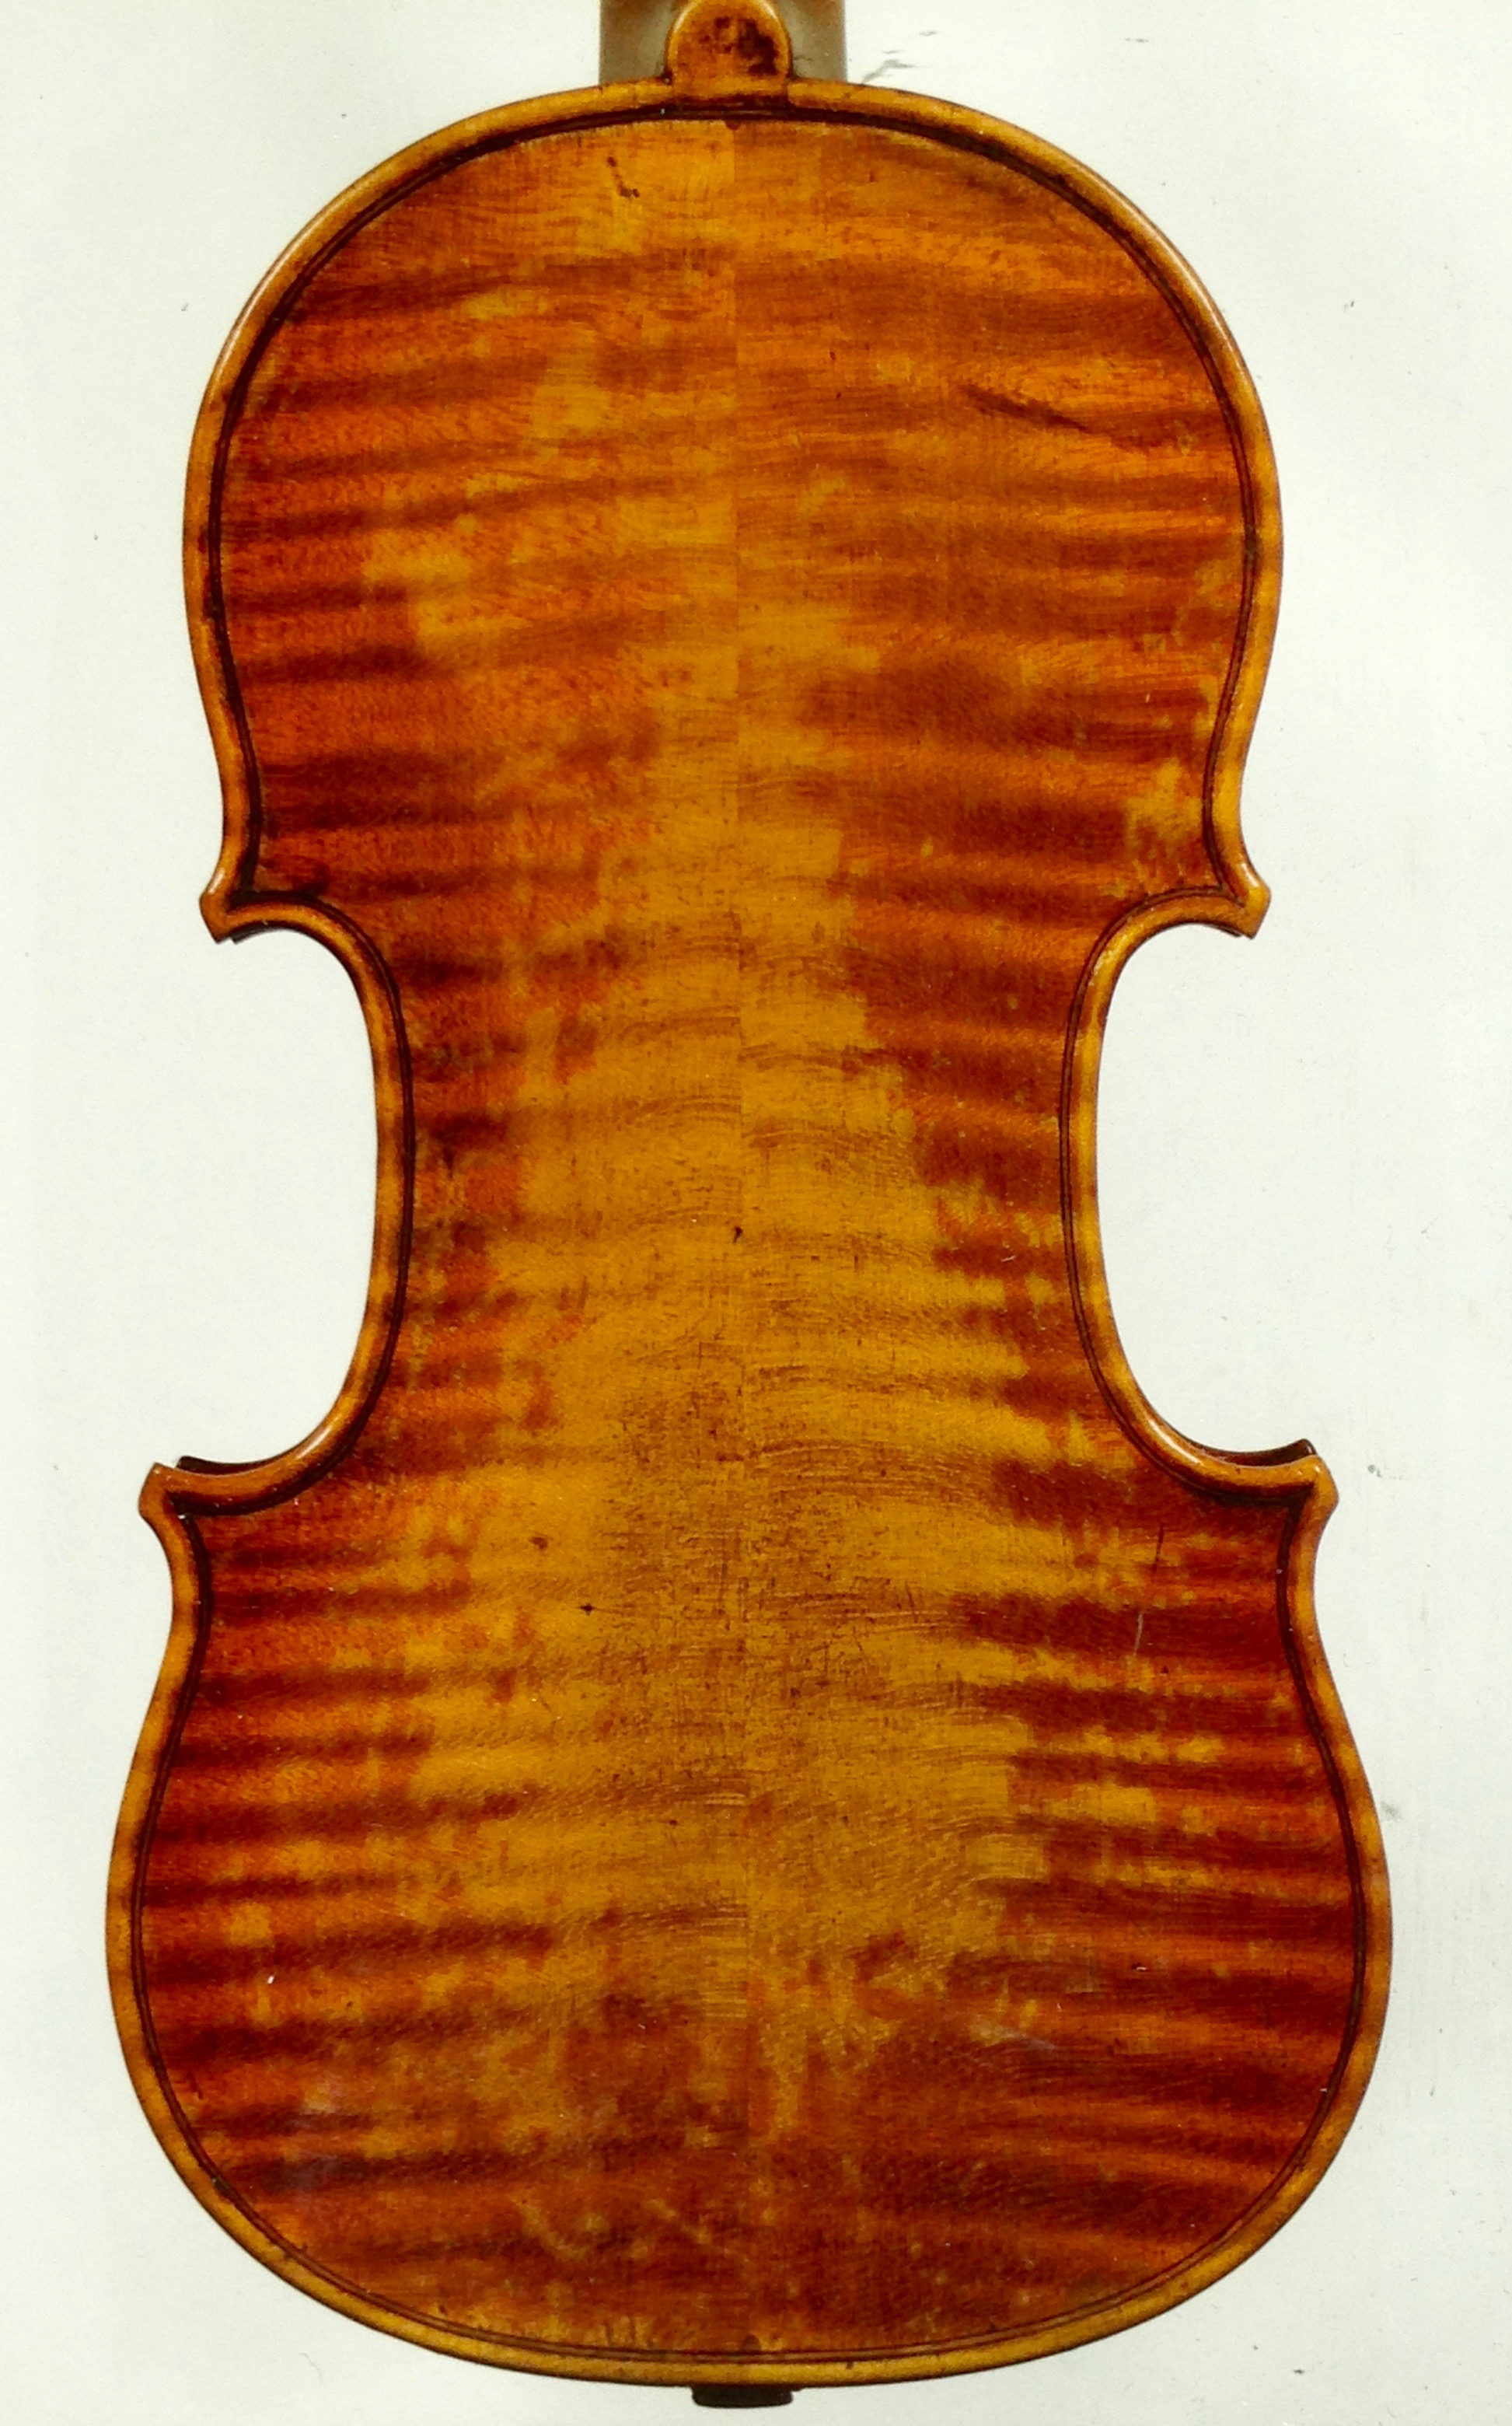 The back of a Stradivari violin. The natural wear of the varnish creates a gorgeous patina that can't be reproduced artificially.